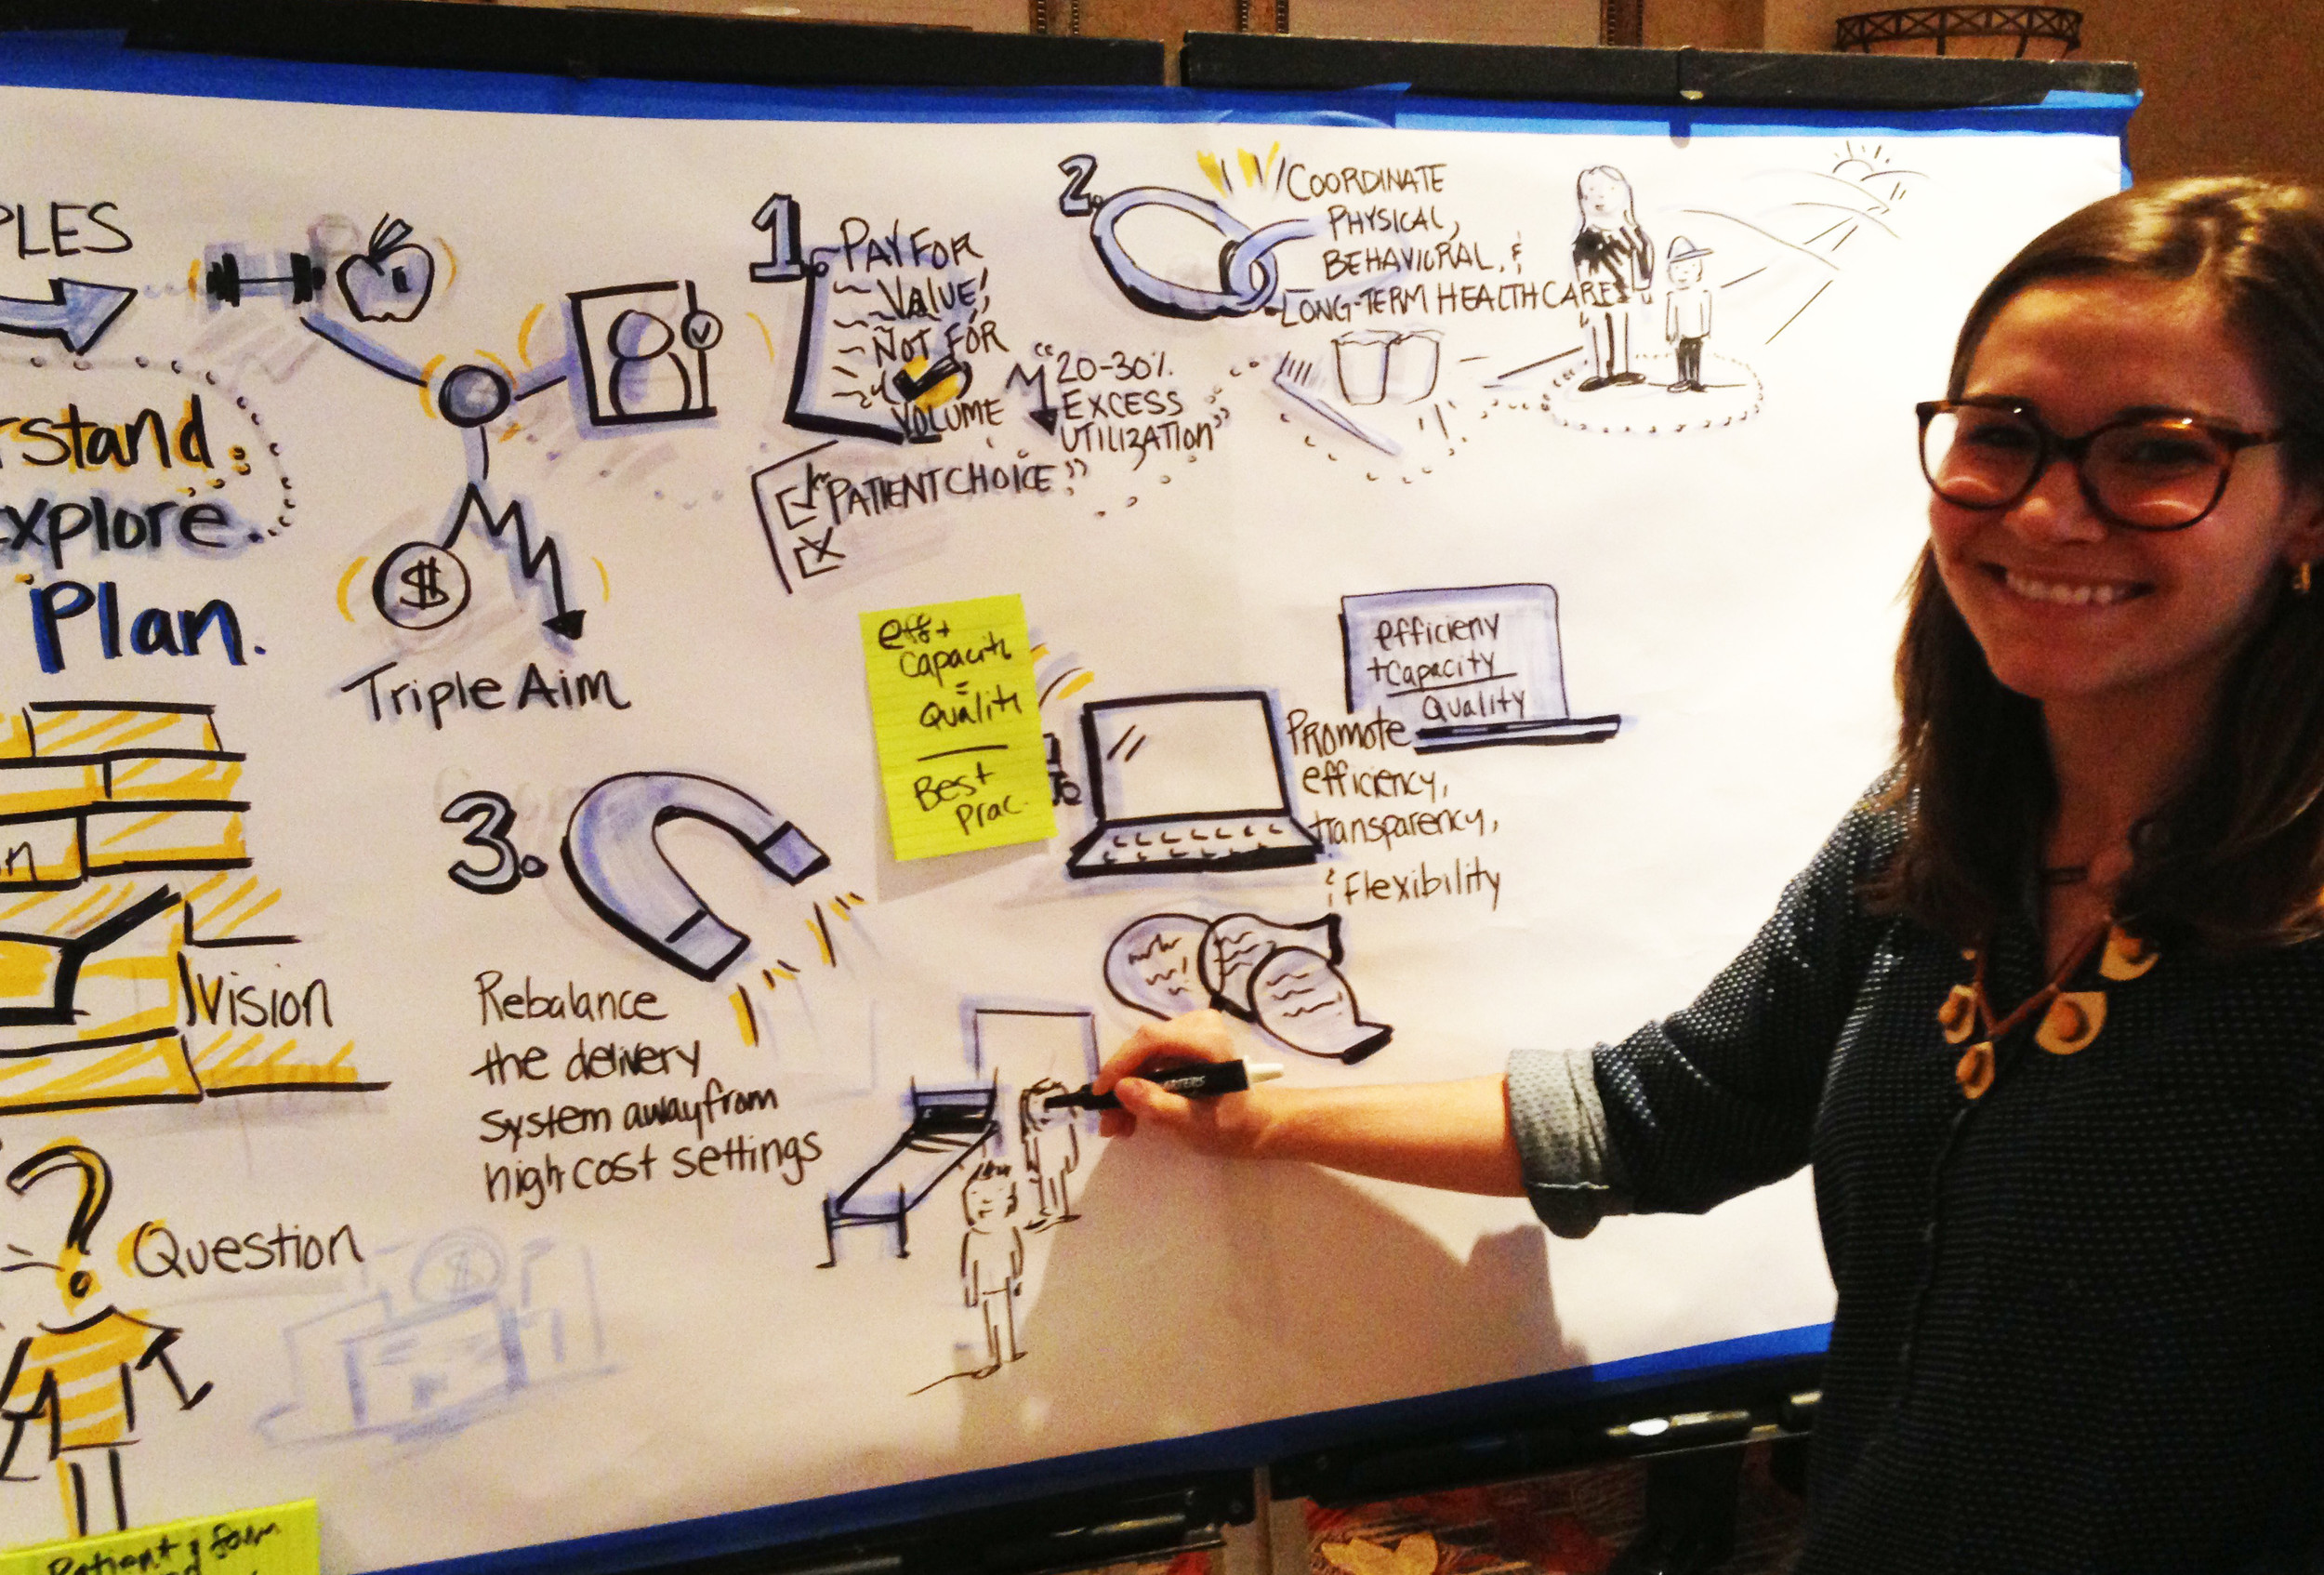 A graphic artist from the Deloitte team facilitating the June 24 brain storming session of the Working Group To Reinvent Medicaid, as part of a pro bono commitment by Deloitte.